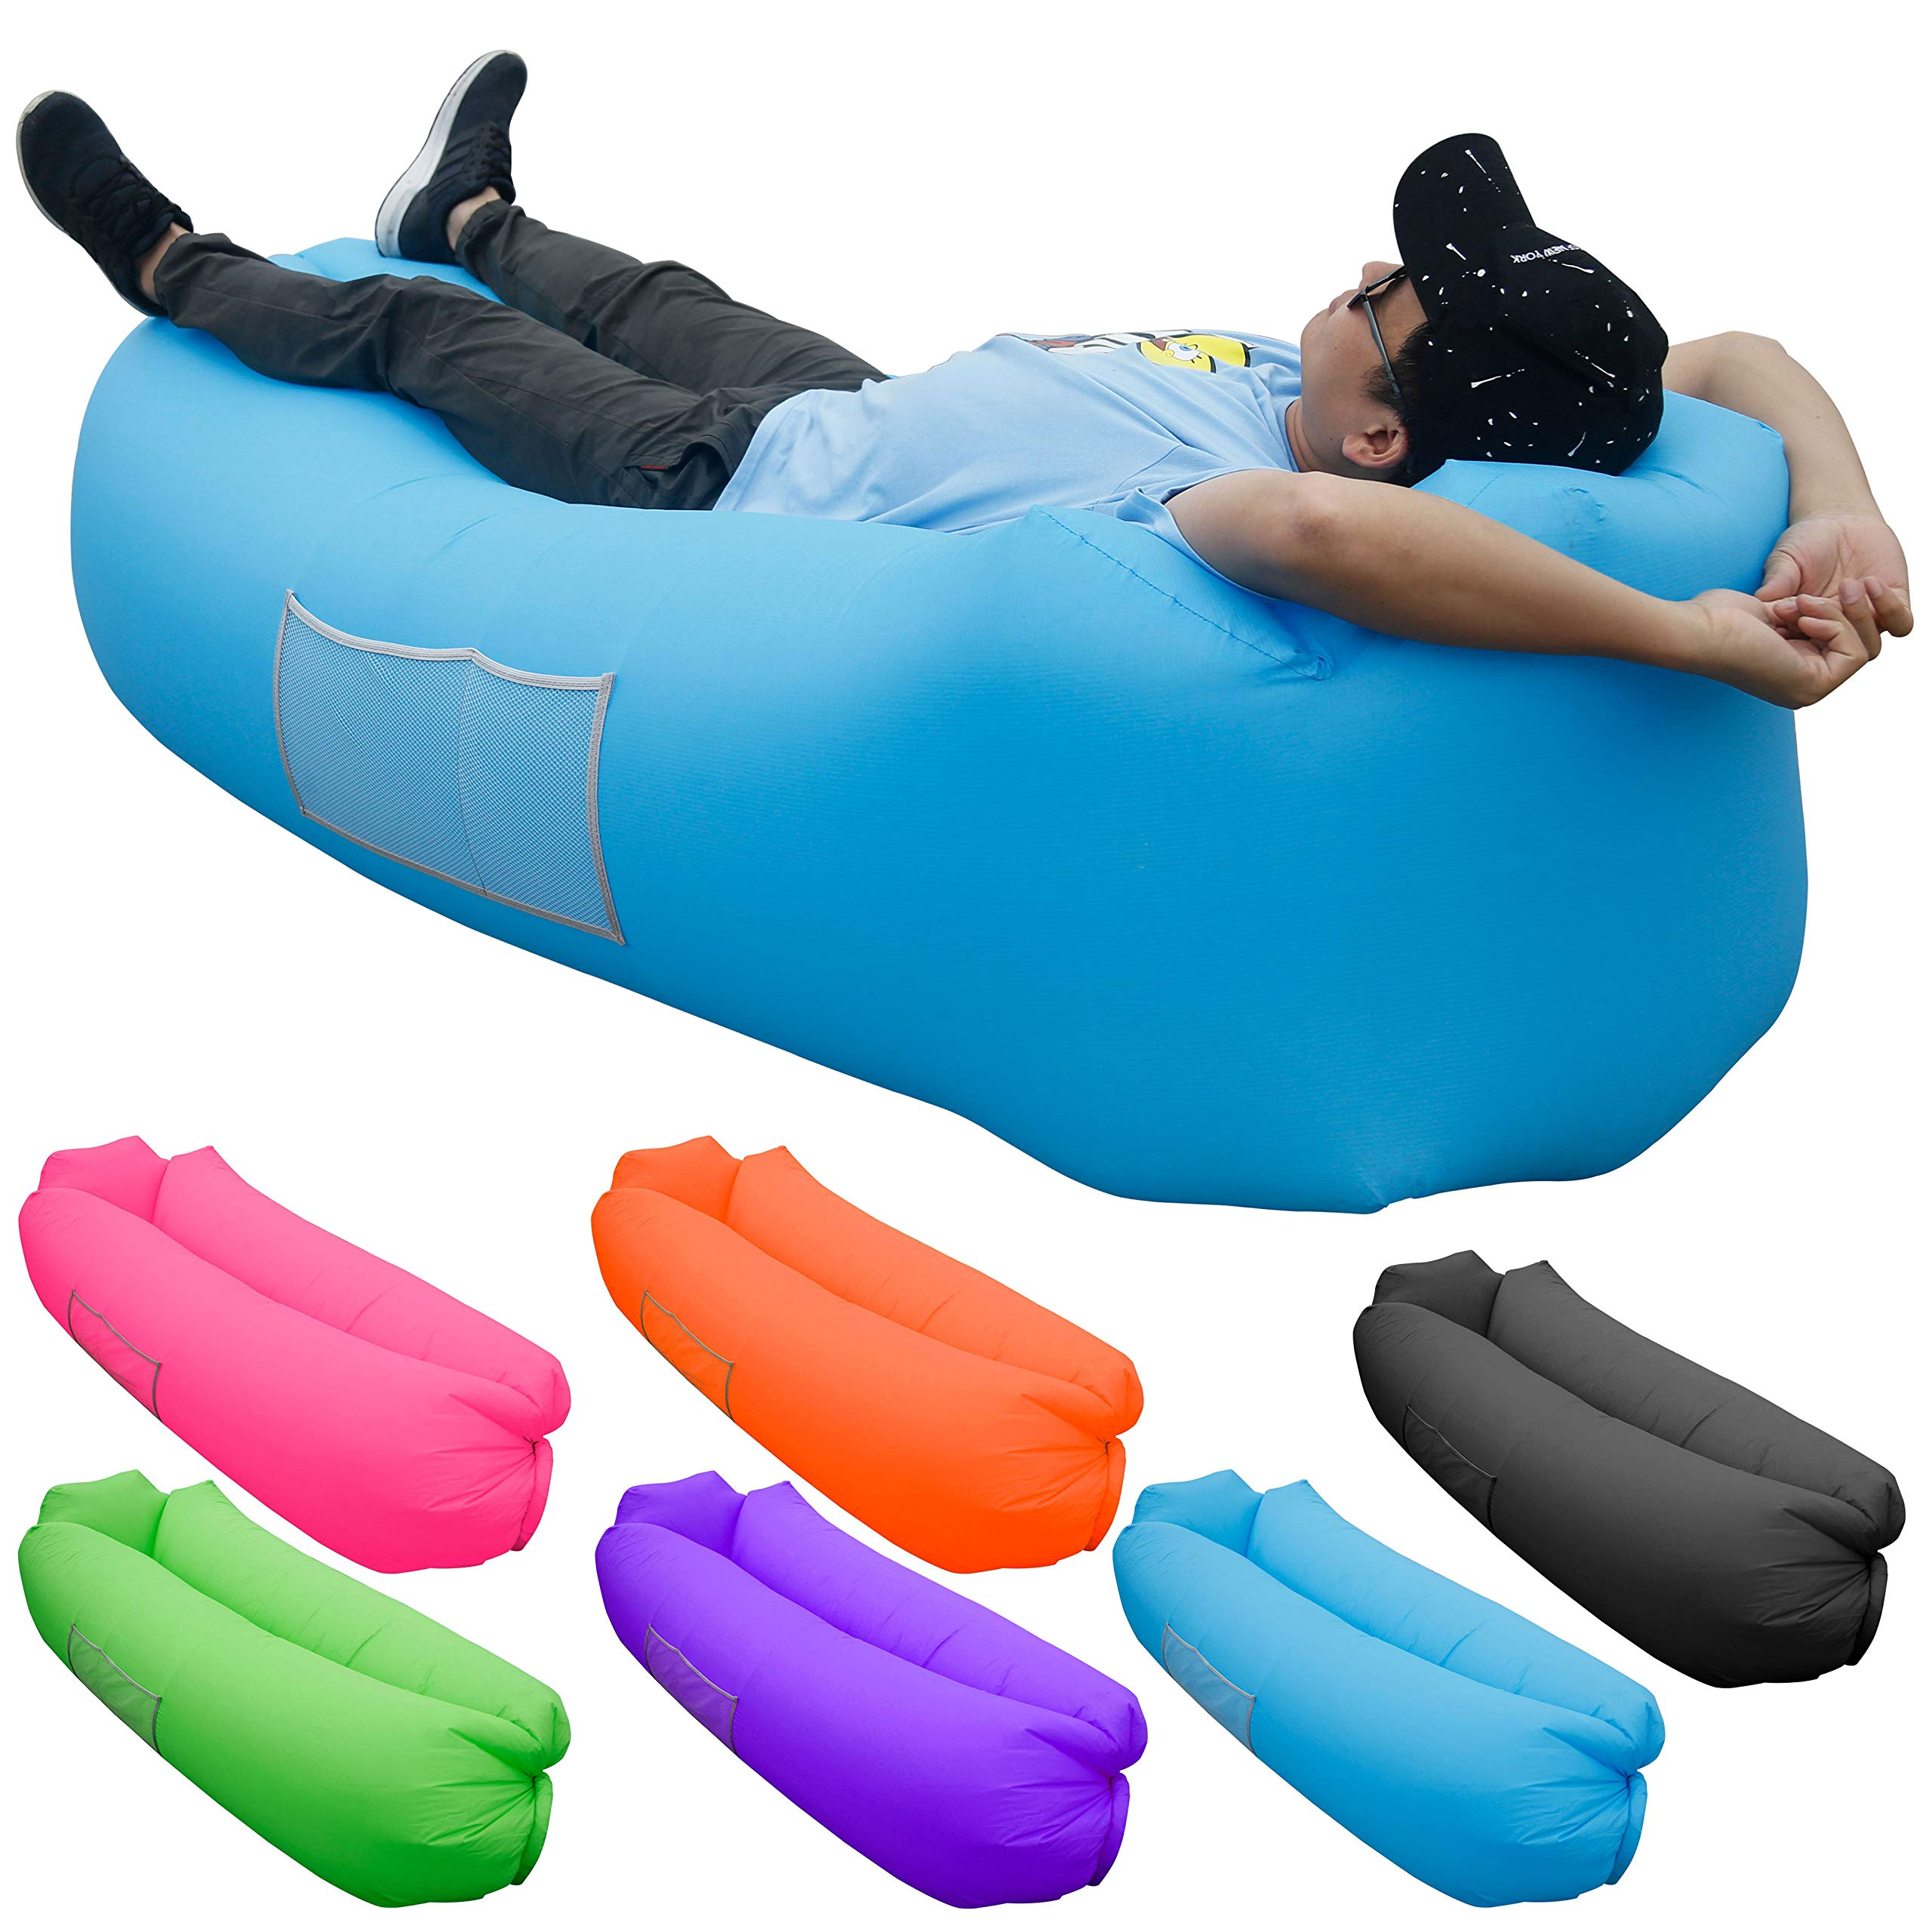 Skoloo Inflatable Lounger Air Sofa, Portable Water Proof Anti-Air Leaking & Pillow-Shaped Designed Couch for Backyard Pool Travel Camping Hiking Lakeside Picnics Music Festivals Beach Parties,Blue by Skoloo